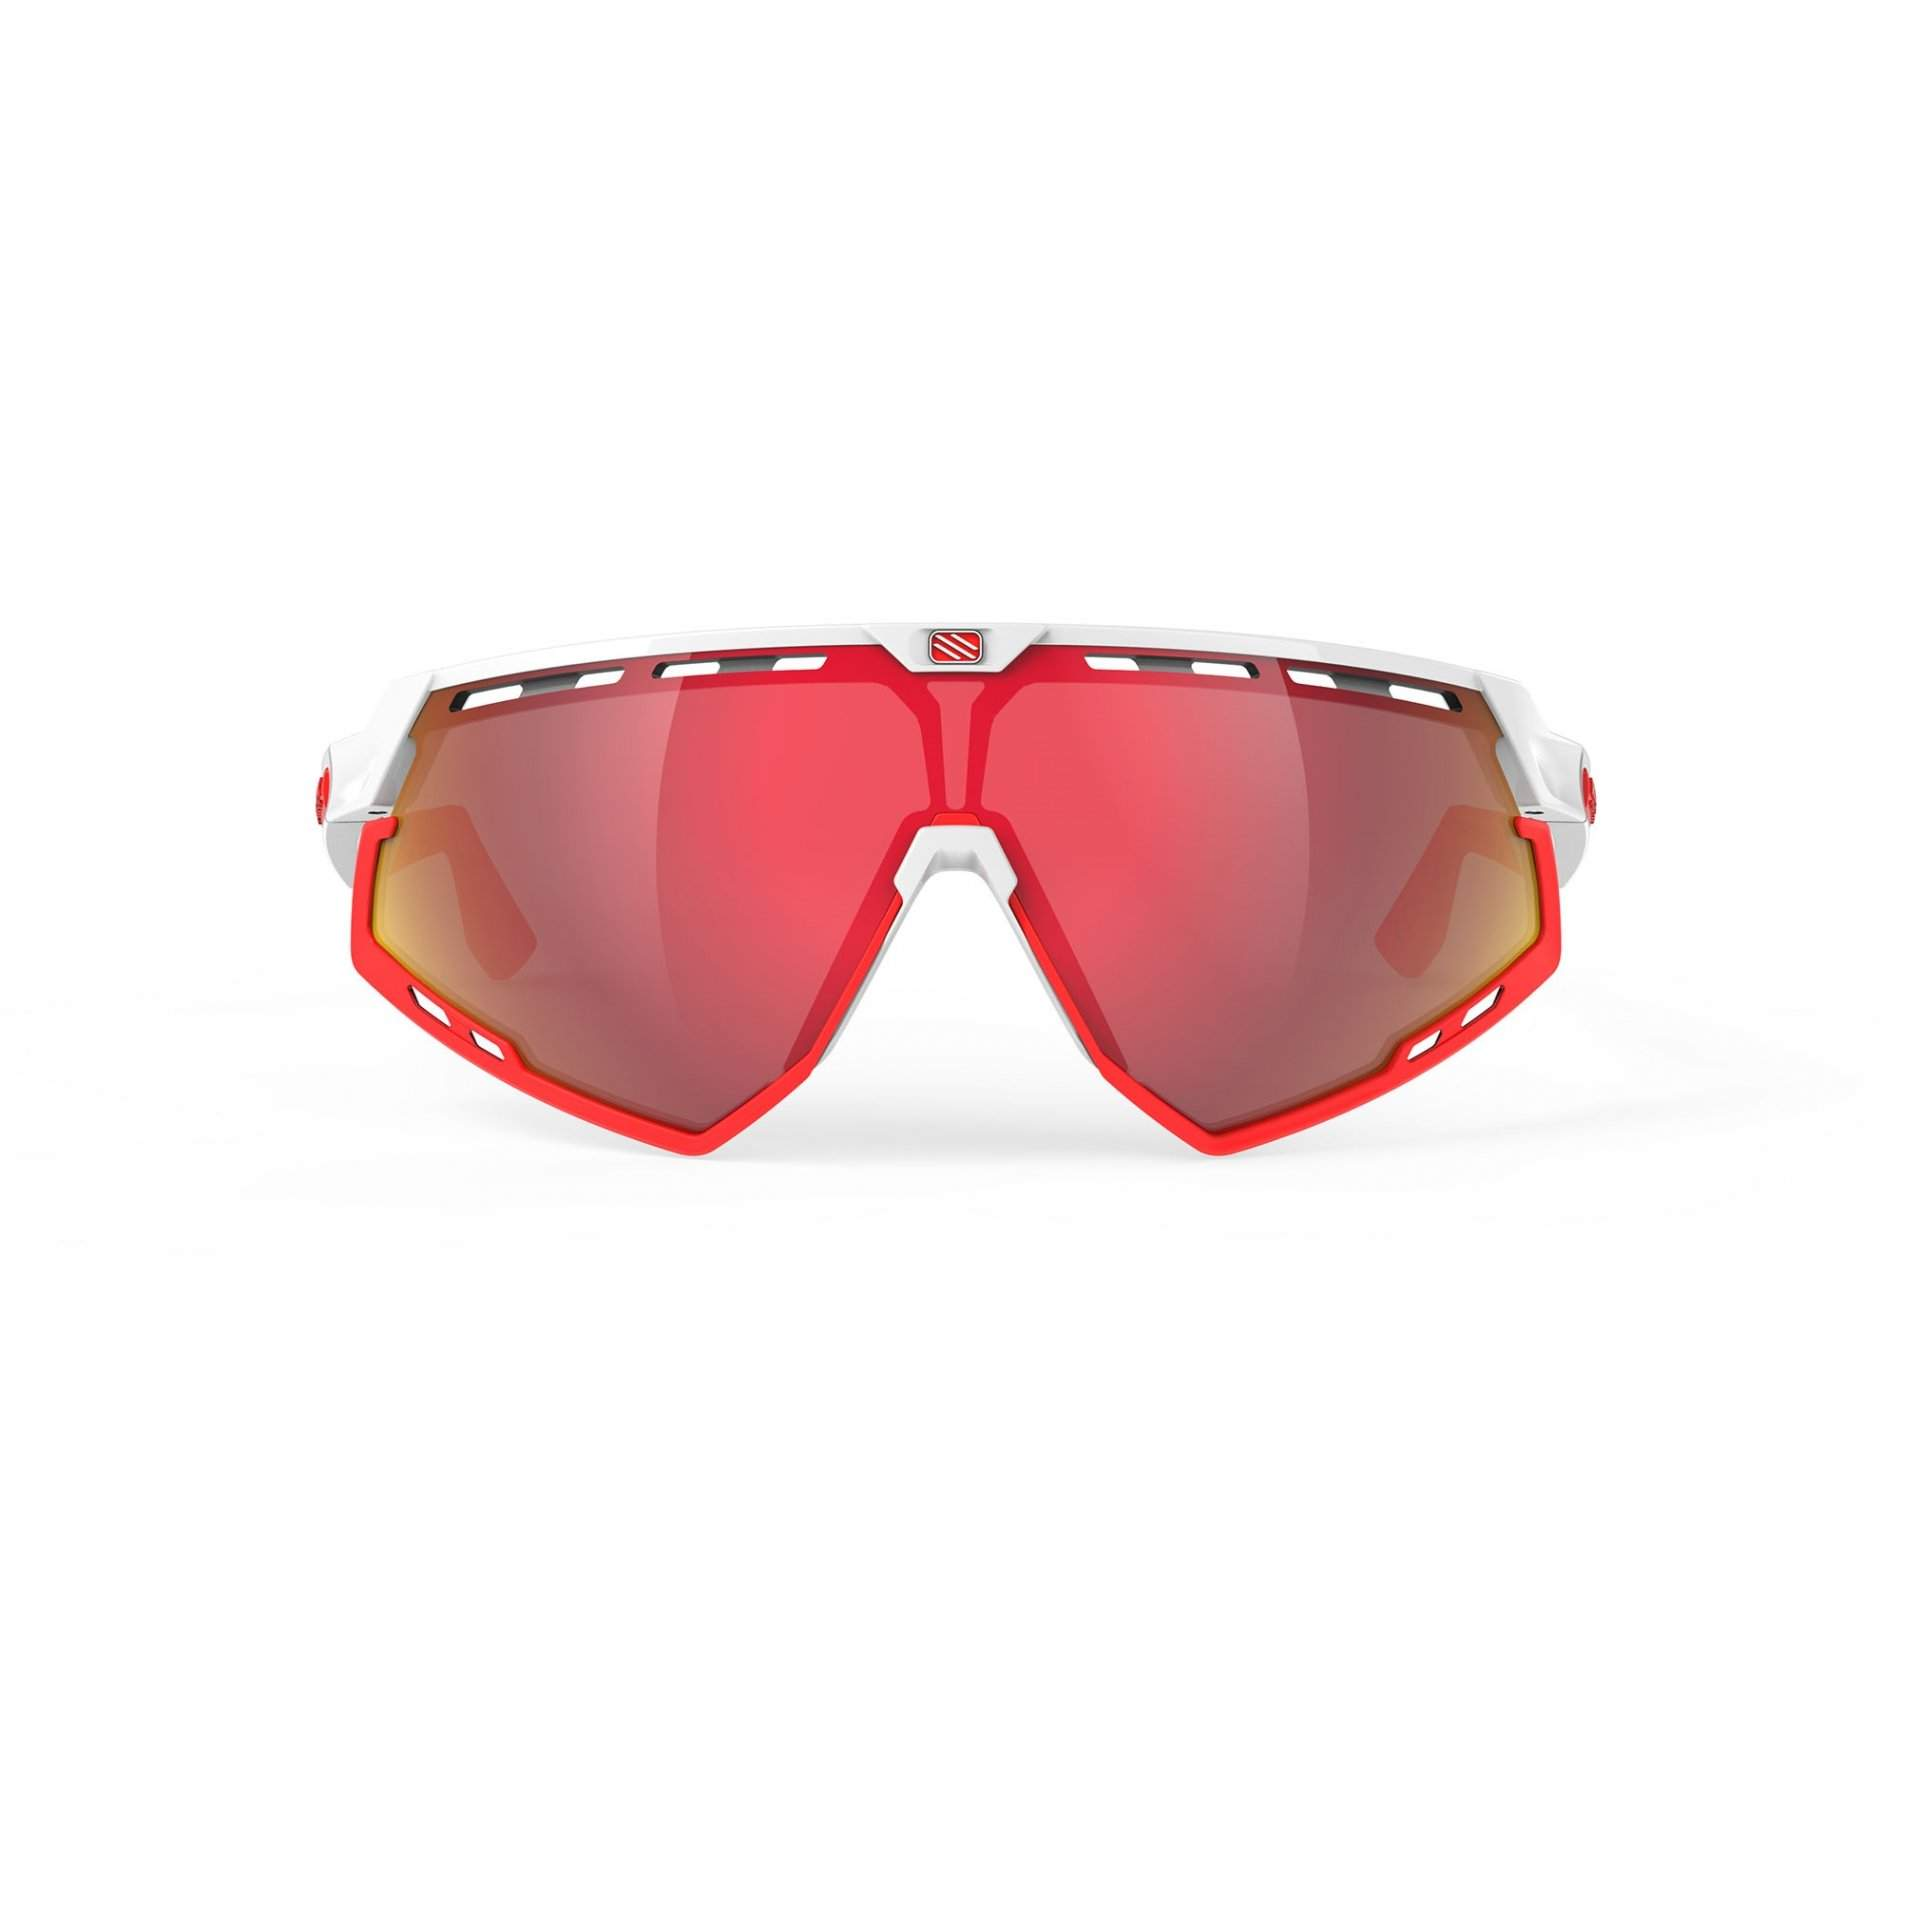 OKULARY RUDY PROJECT DEFENDER MULTILASER RED + WHITE GLOSS BUMPRES RED FLUO SP5238690000 Z PRZODU